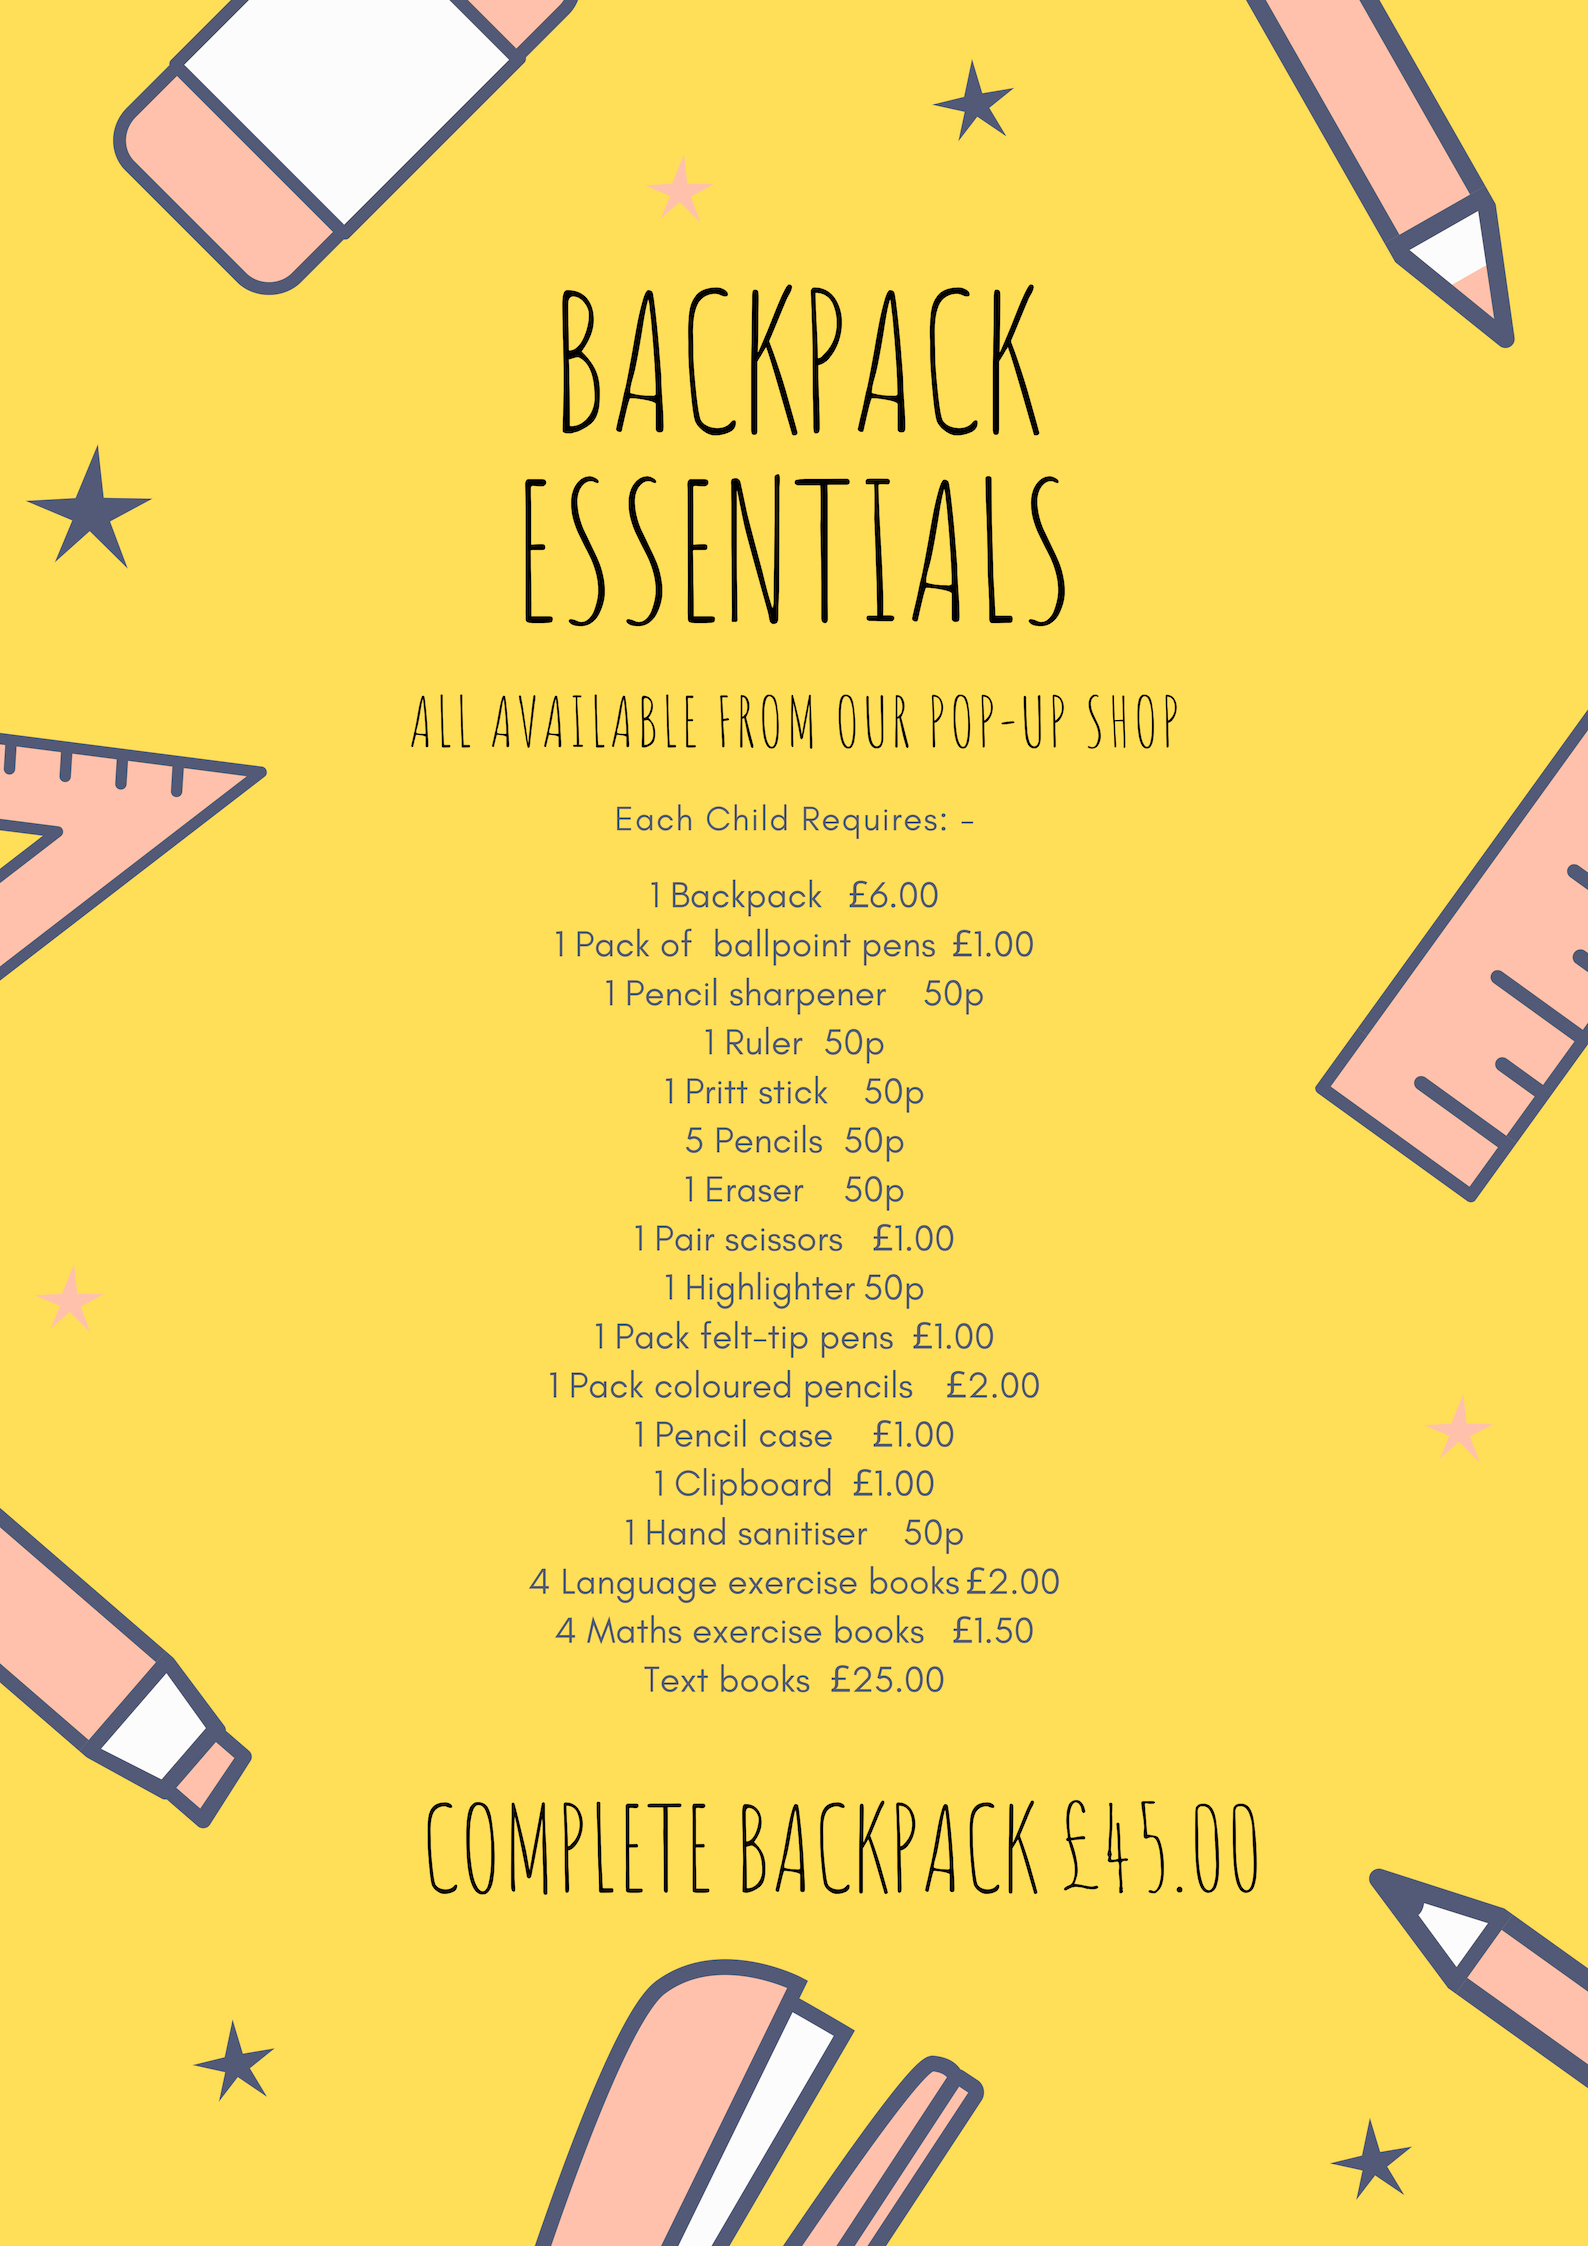 Backpack EssentialsAvailable from our 'Pop-up Shop'. - Every Sunday in March 2019Somerset Hall, Portishead9:30am - 11:00am